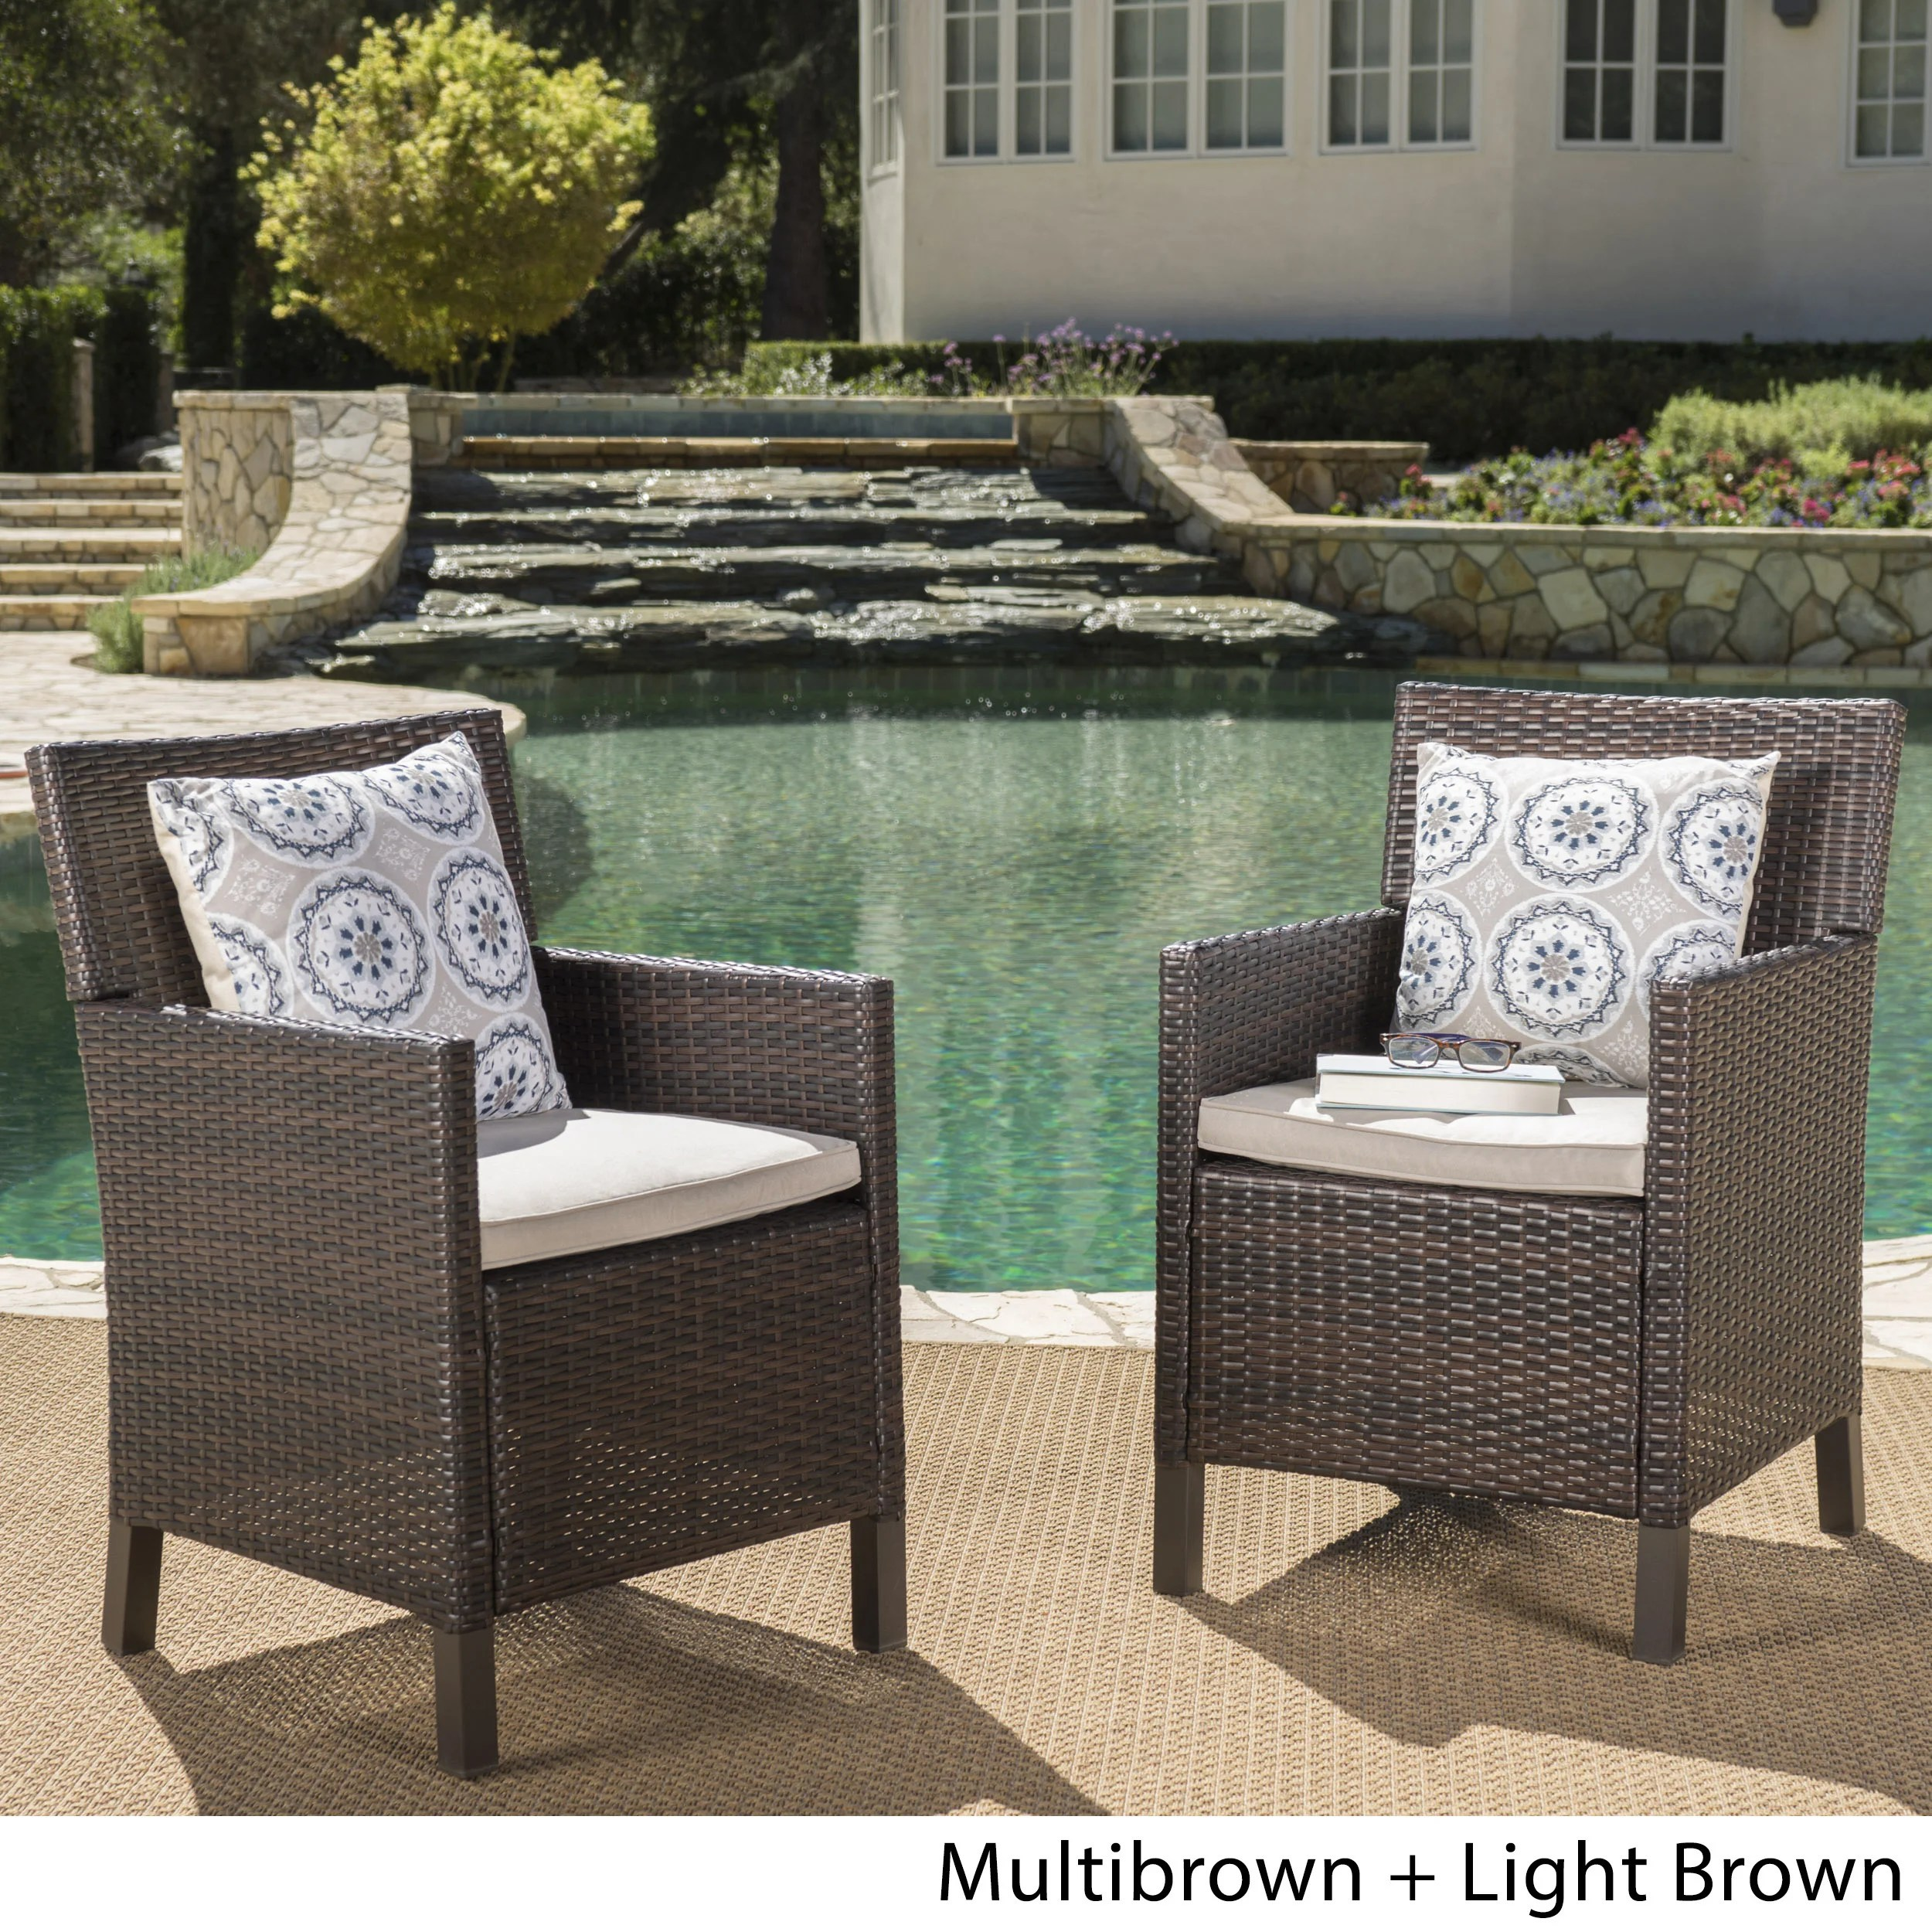 Outdoor Wicker Dining Chairs Details About Cypress Outdoor Wicker Dining Chairs With Cushions Set Of 2 By Christopher